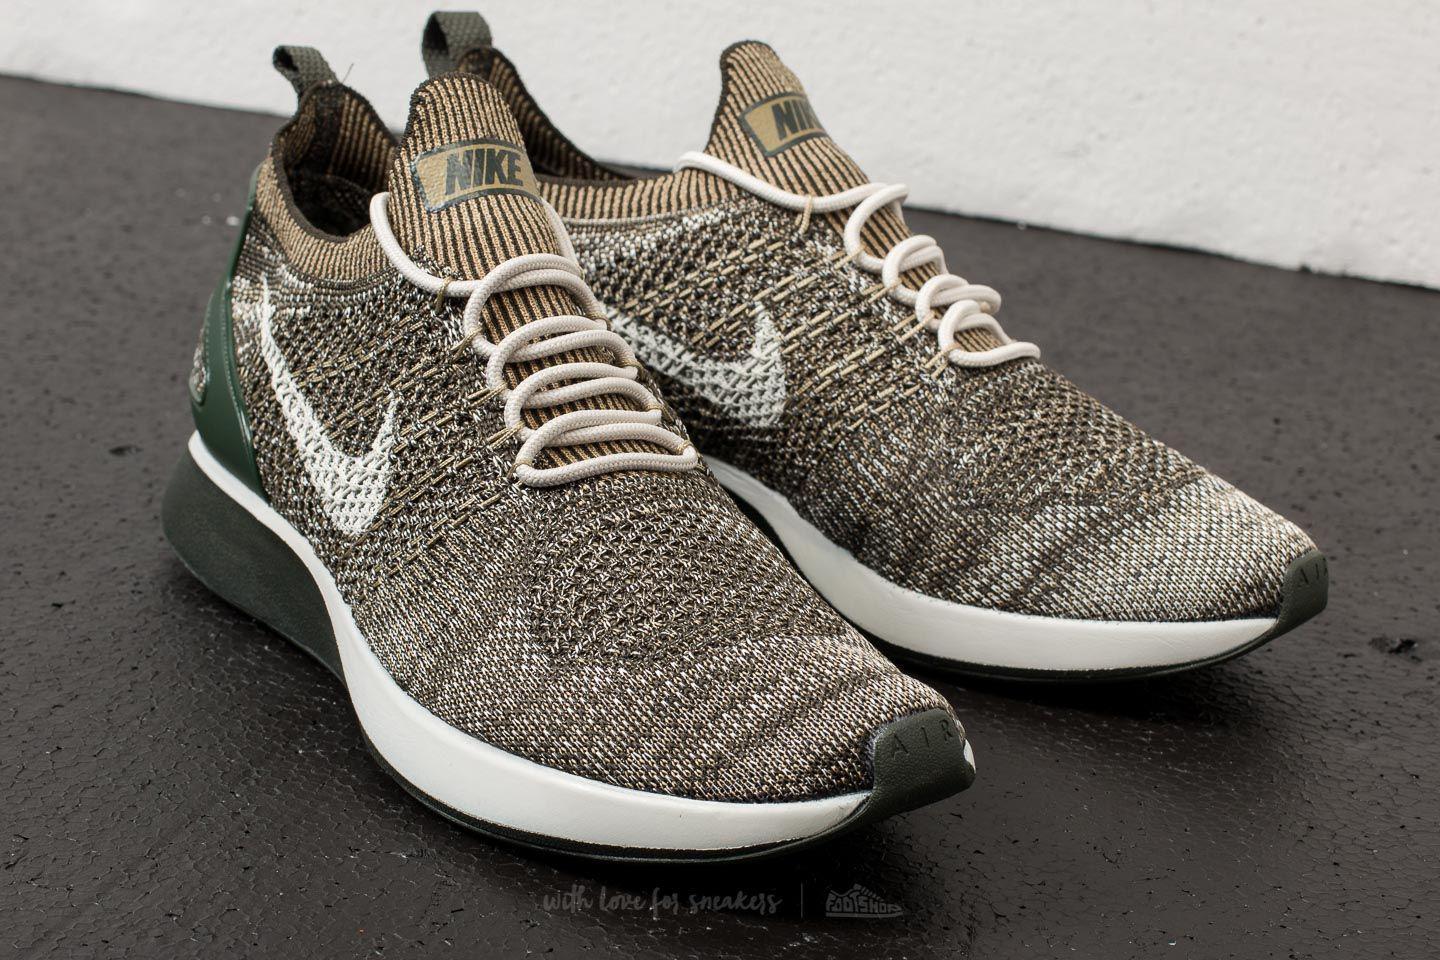 Lyst - Nike Air Zoom Mariah Flyknit Racer Sequoia  Neutral Olive for Men c8757f868